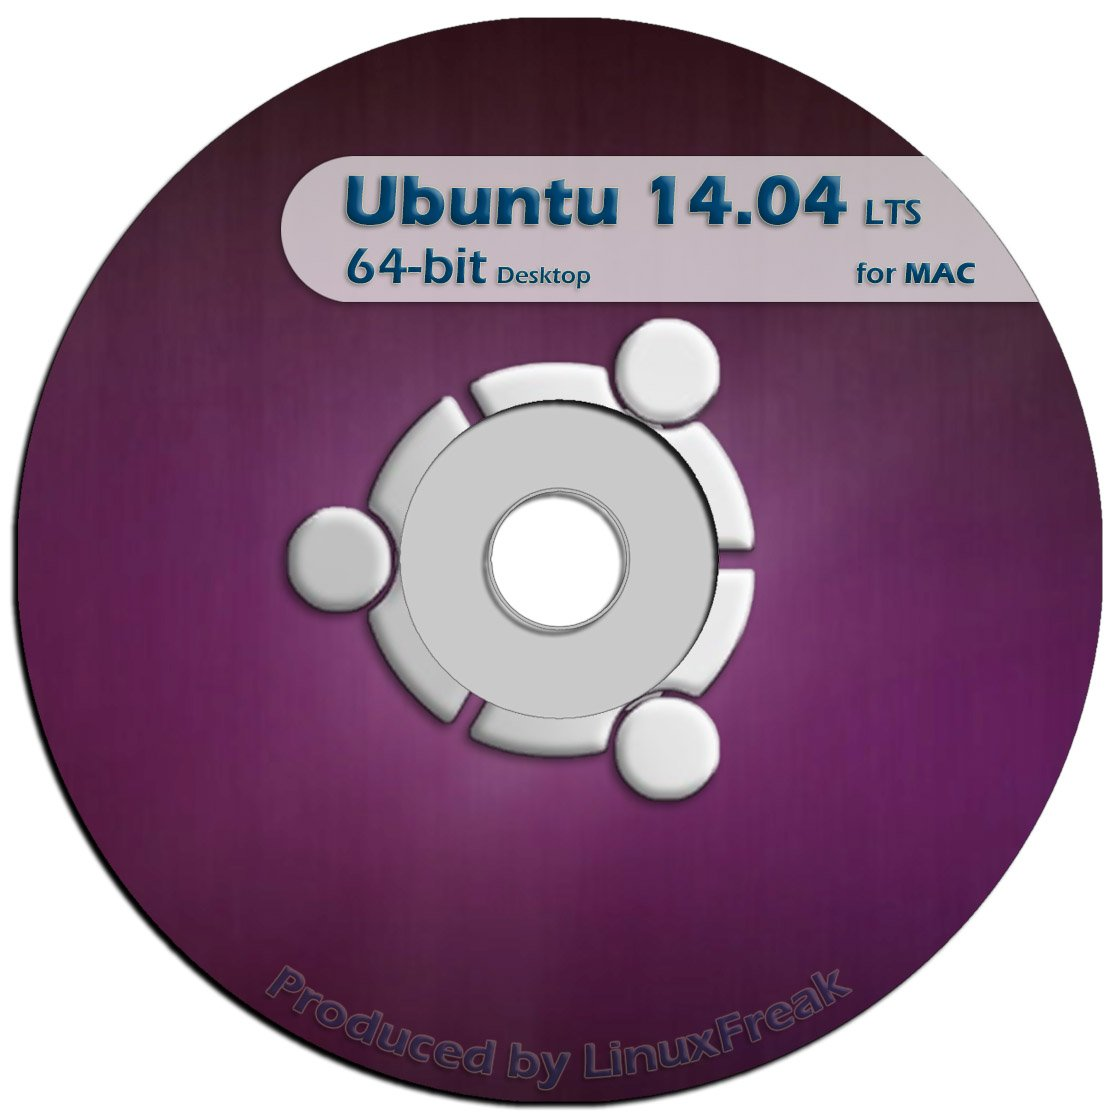 Ubuntu Linux 14.04 DVD - OFFICIAL 64-bit release for MAC by LinuxFreak